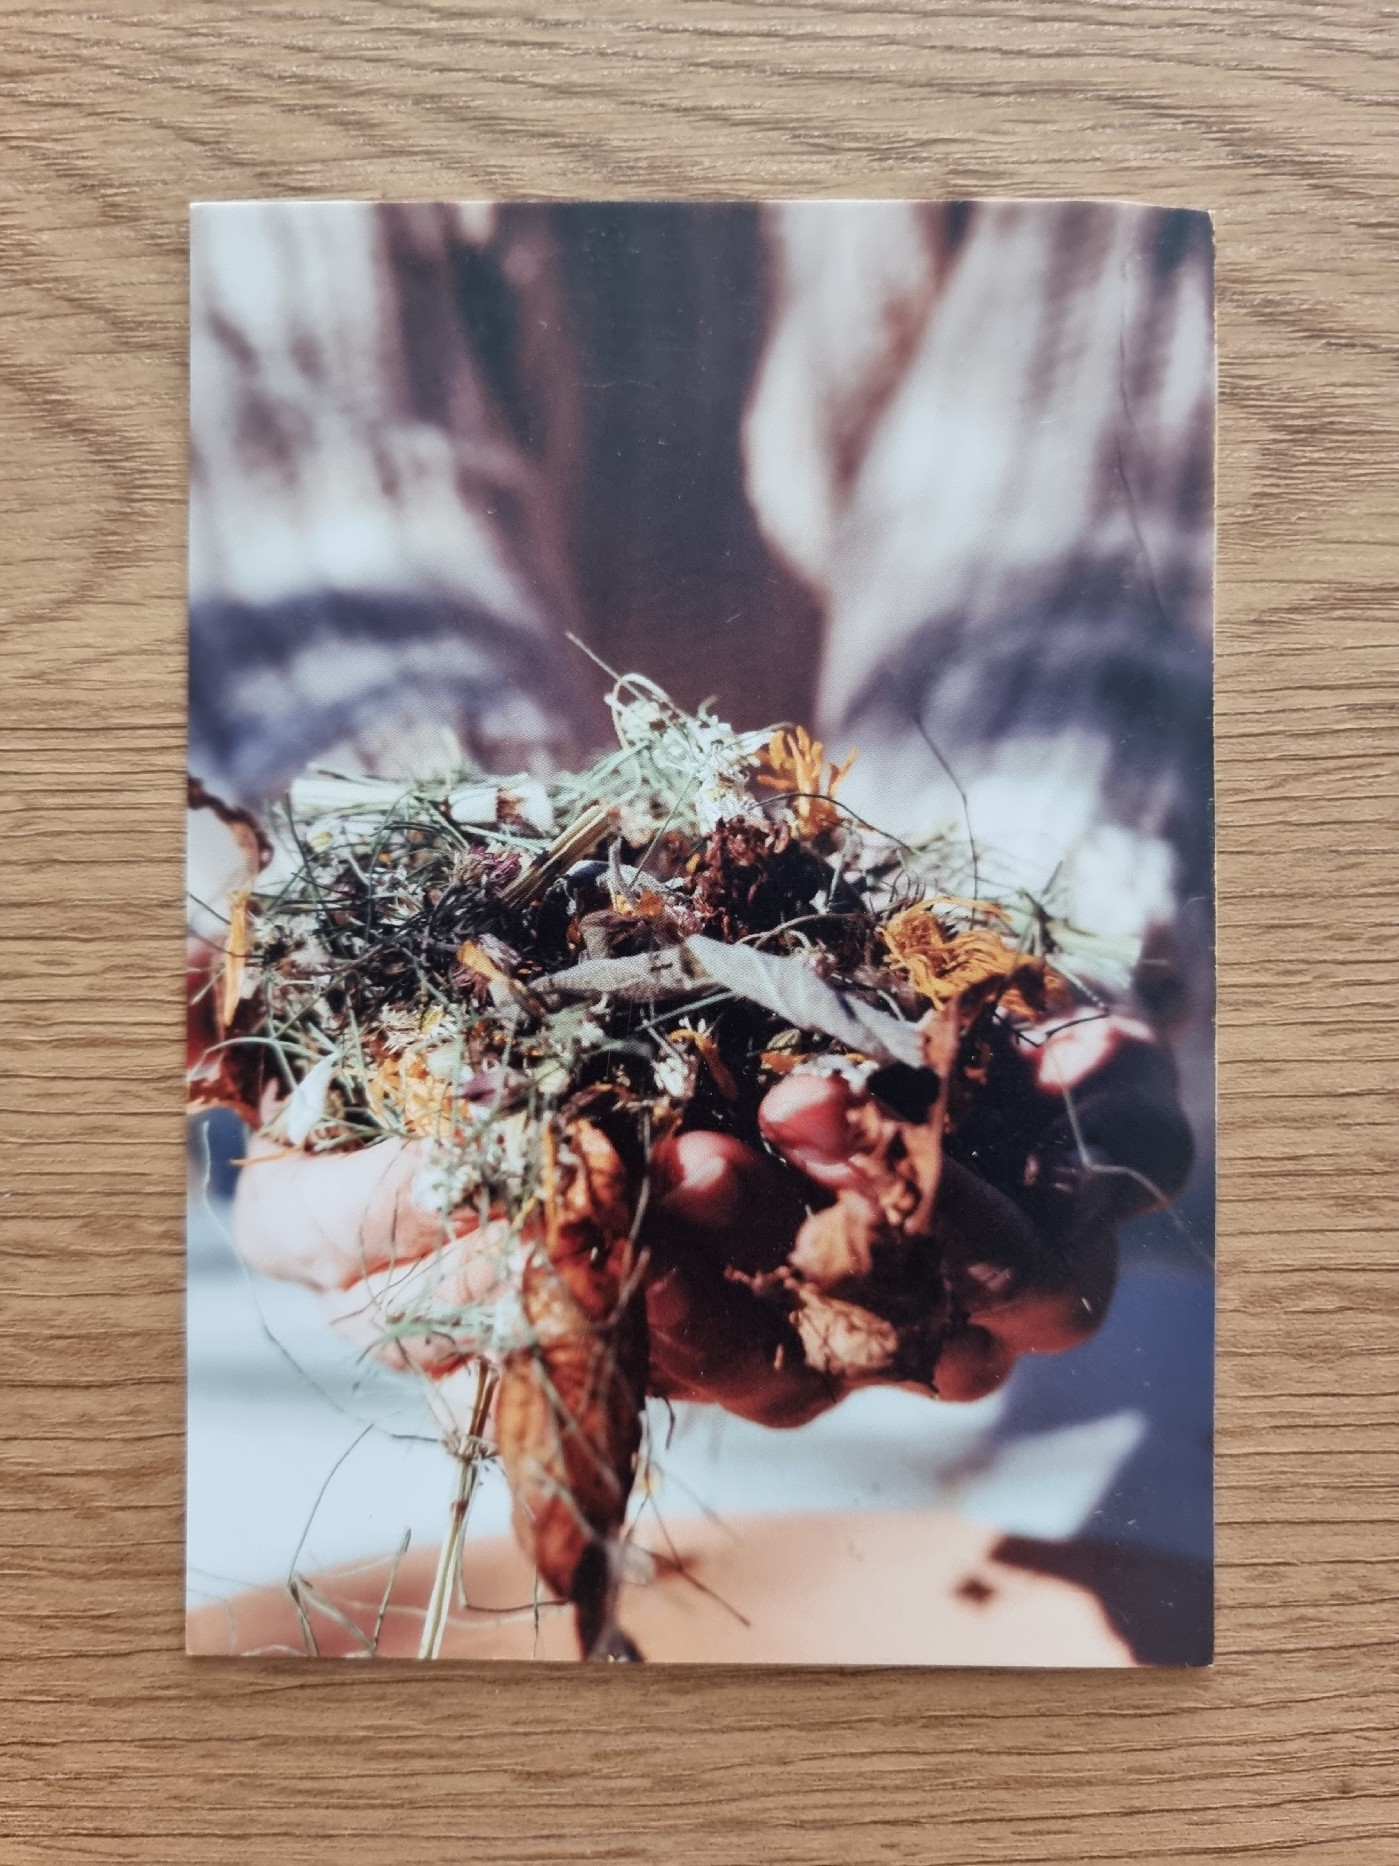 A close up image of a rustic bunch of wild flowers in a pair of hands